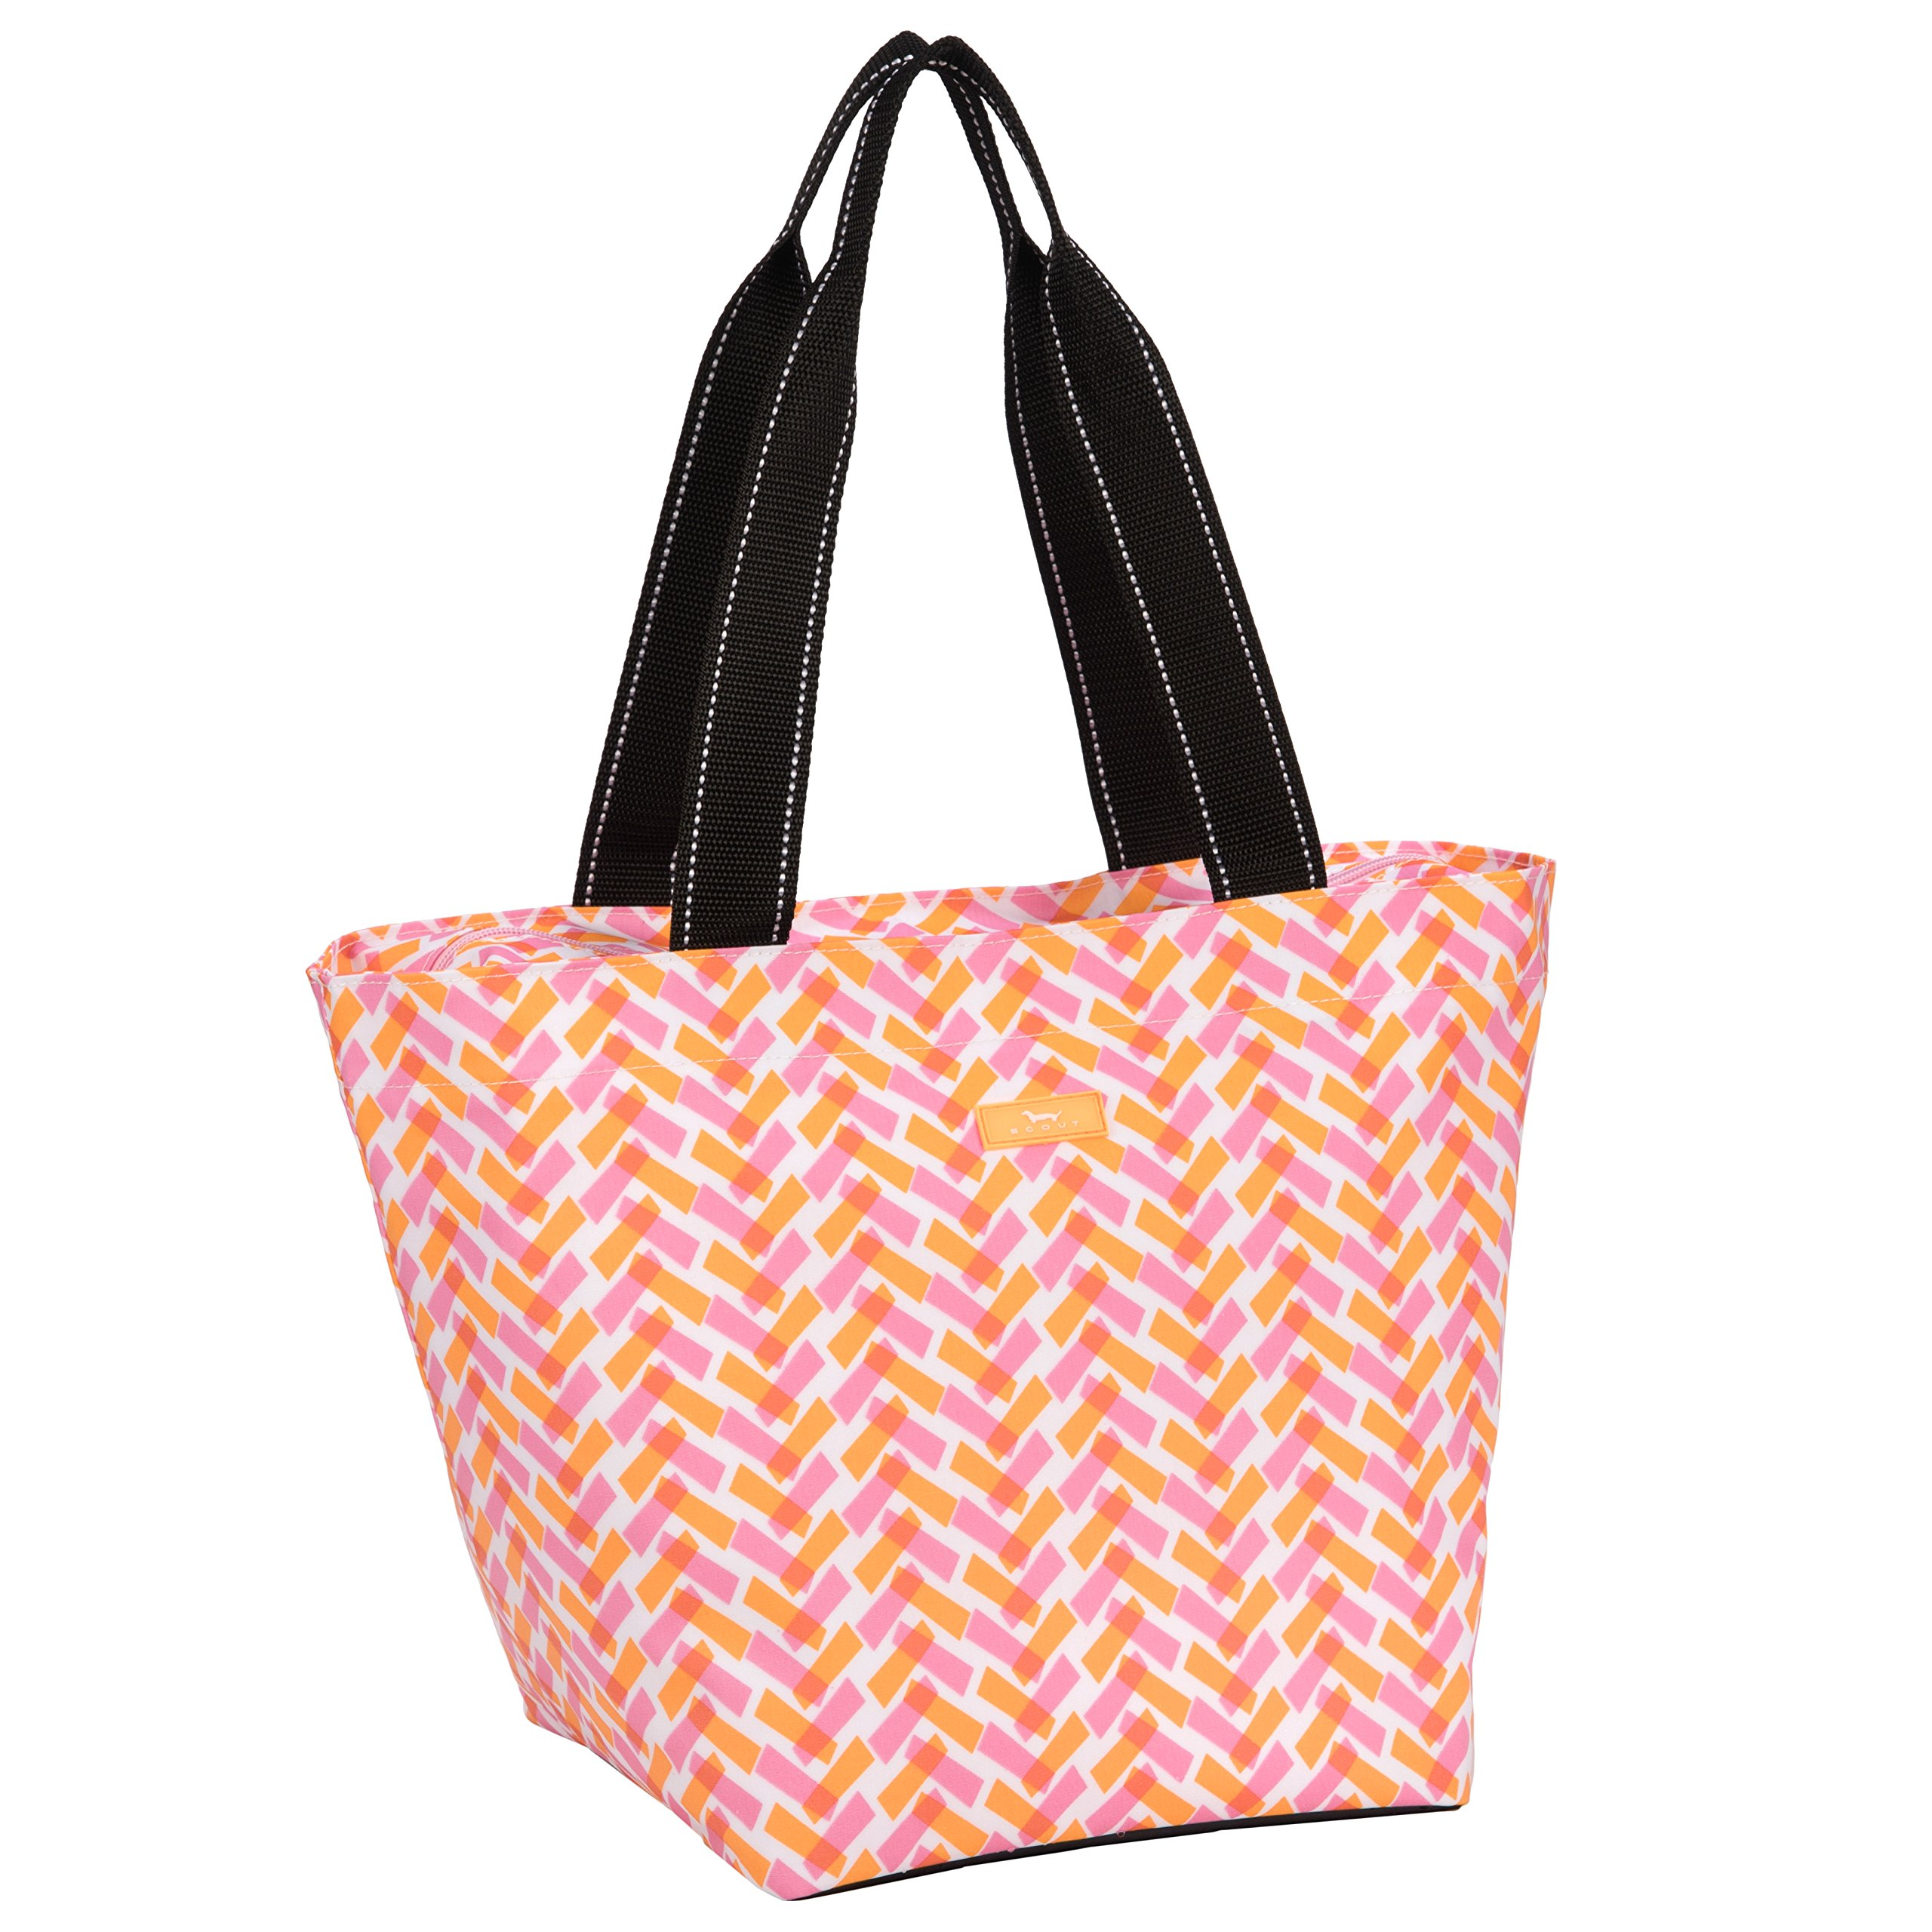 SCOUT Daytripper Everyday Tote Bag, Shoulder Bag, Water Resistant, Wipes Clean, Zips Closed, Spicy Tuna